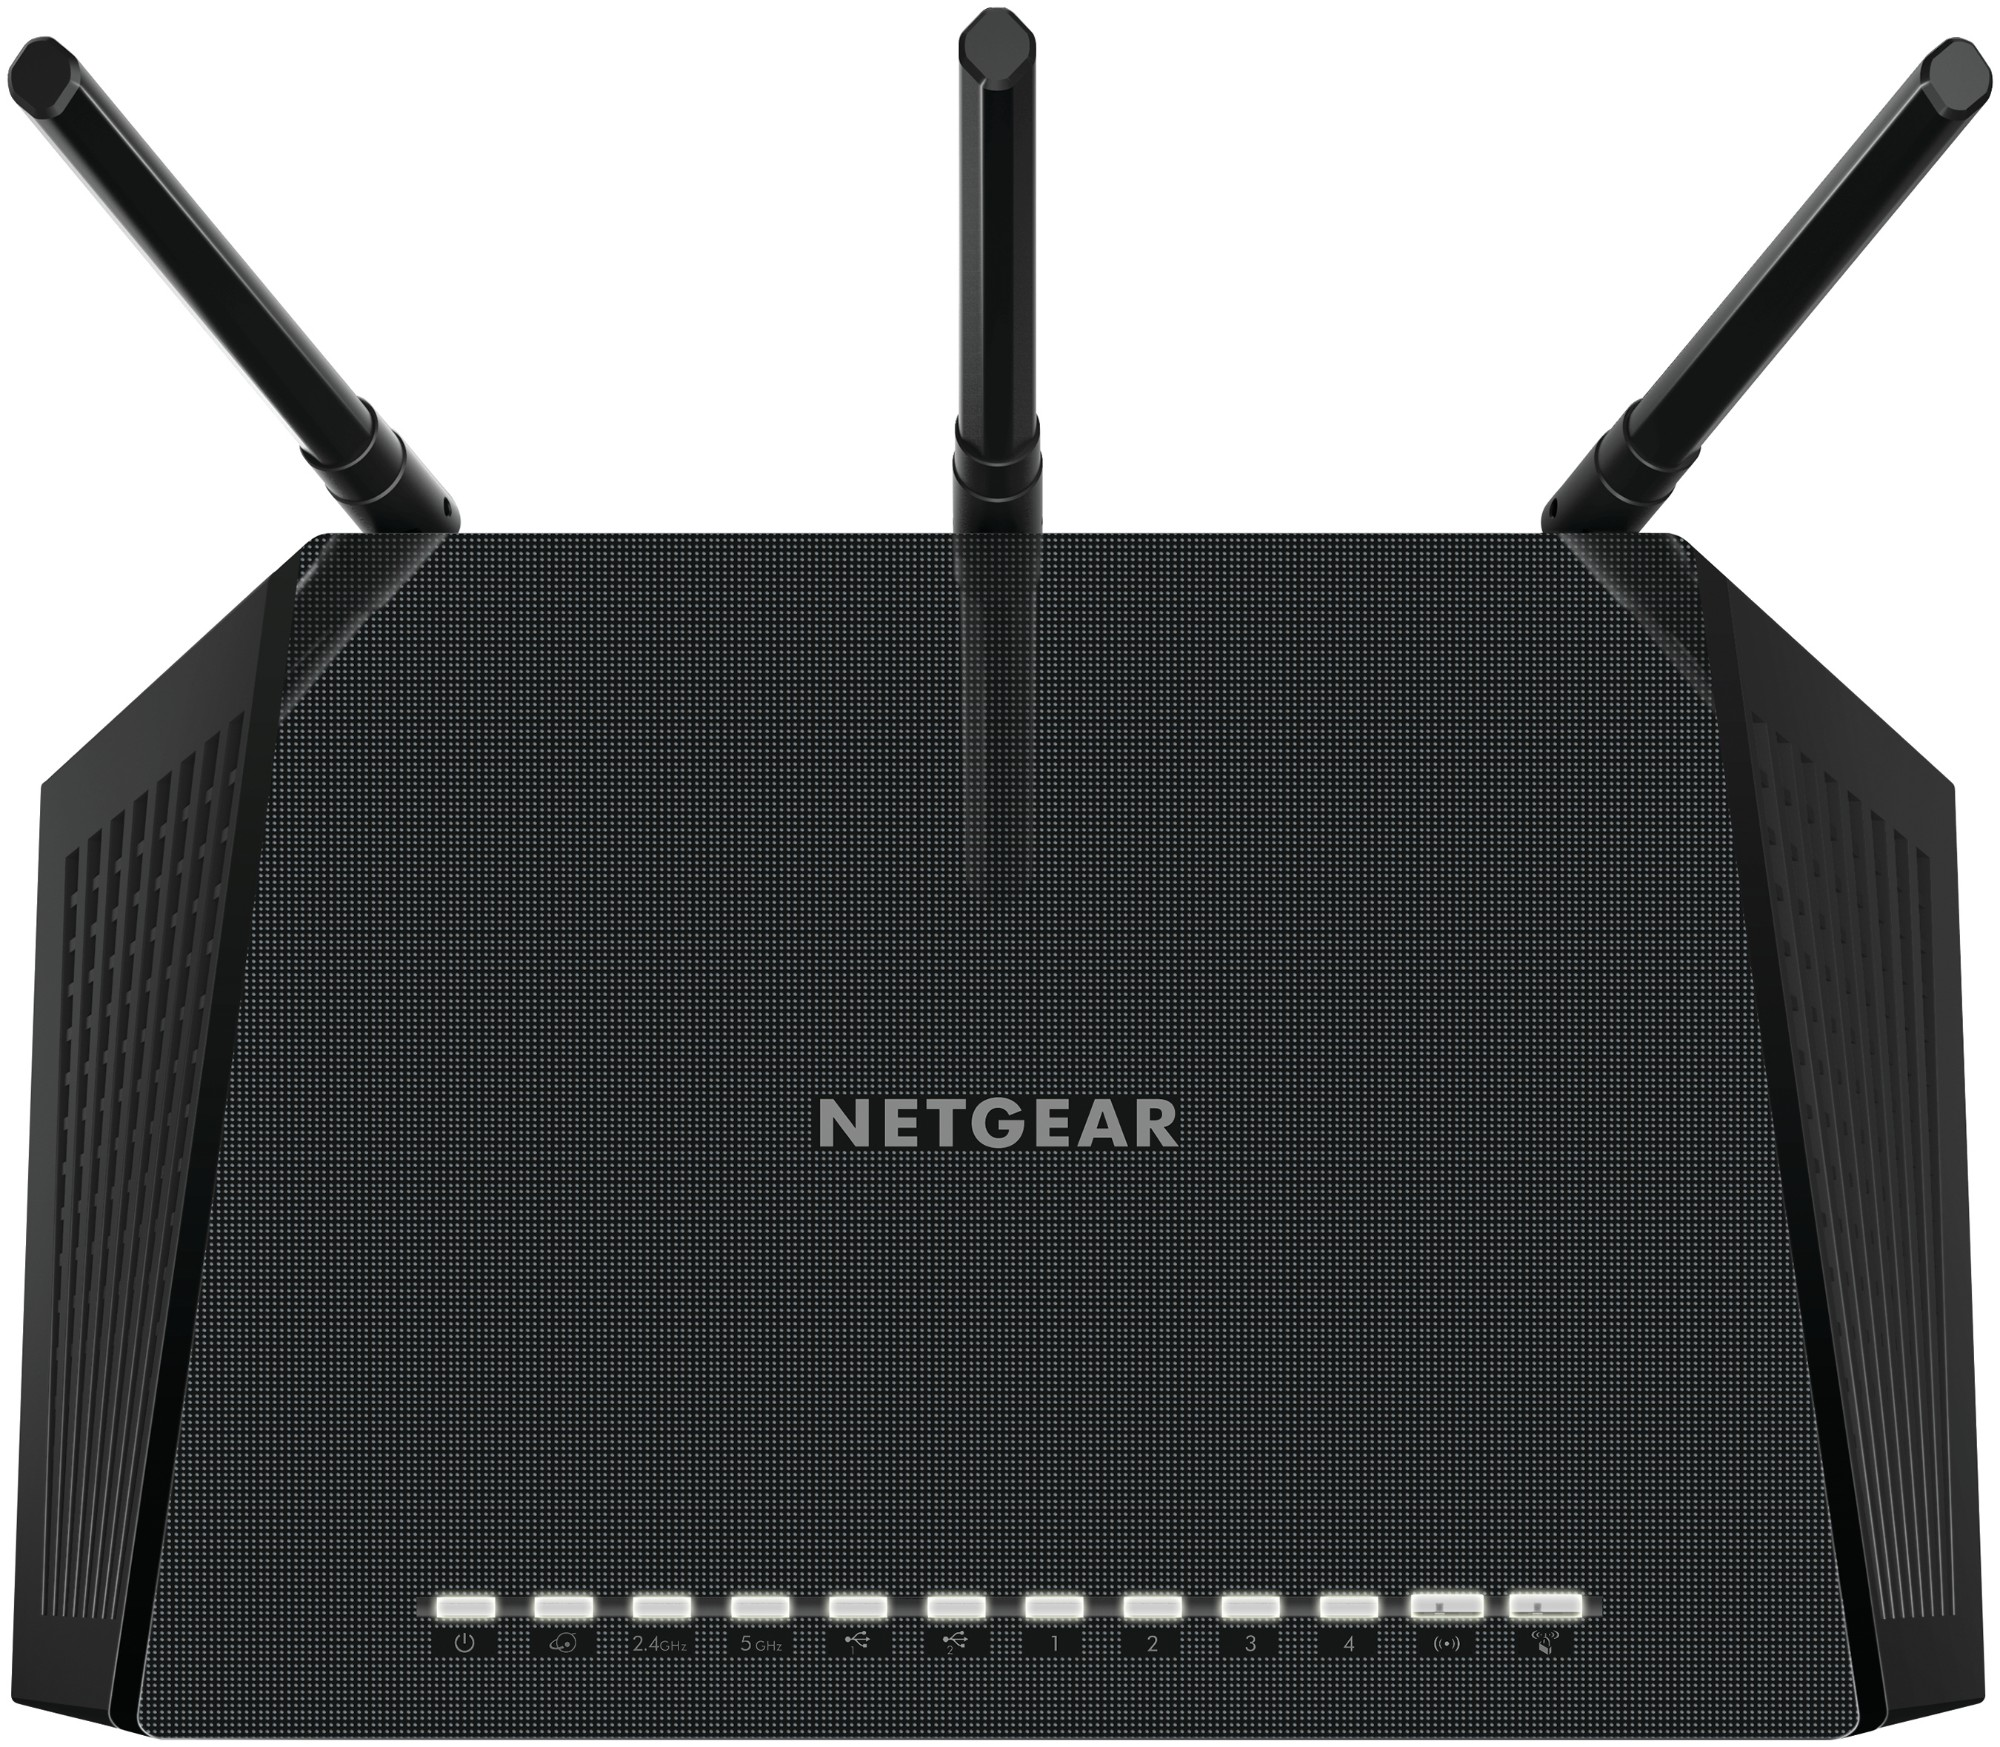 Netgear R6400 AC1750 Dual-Band Smart WiFi Router